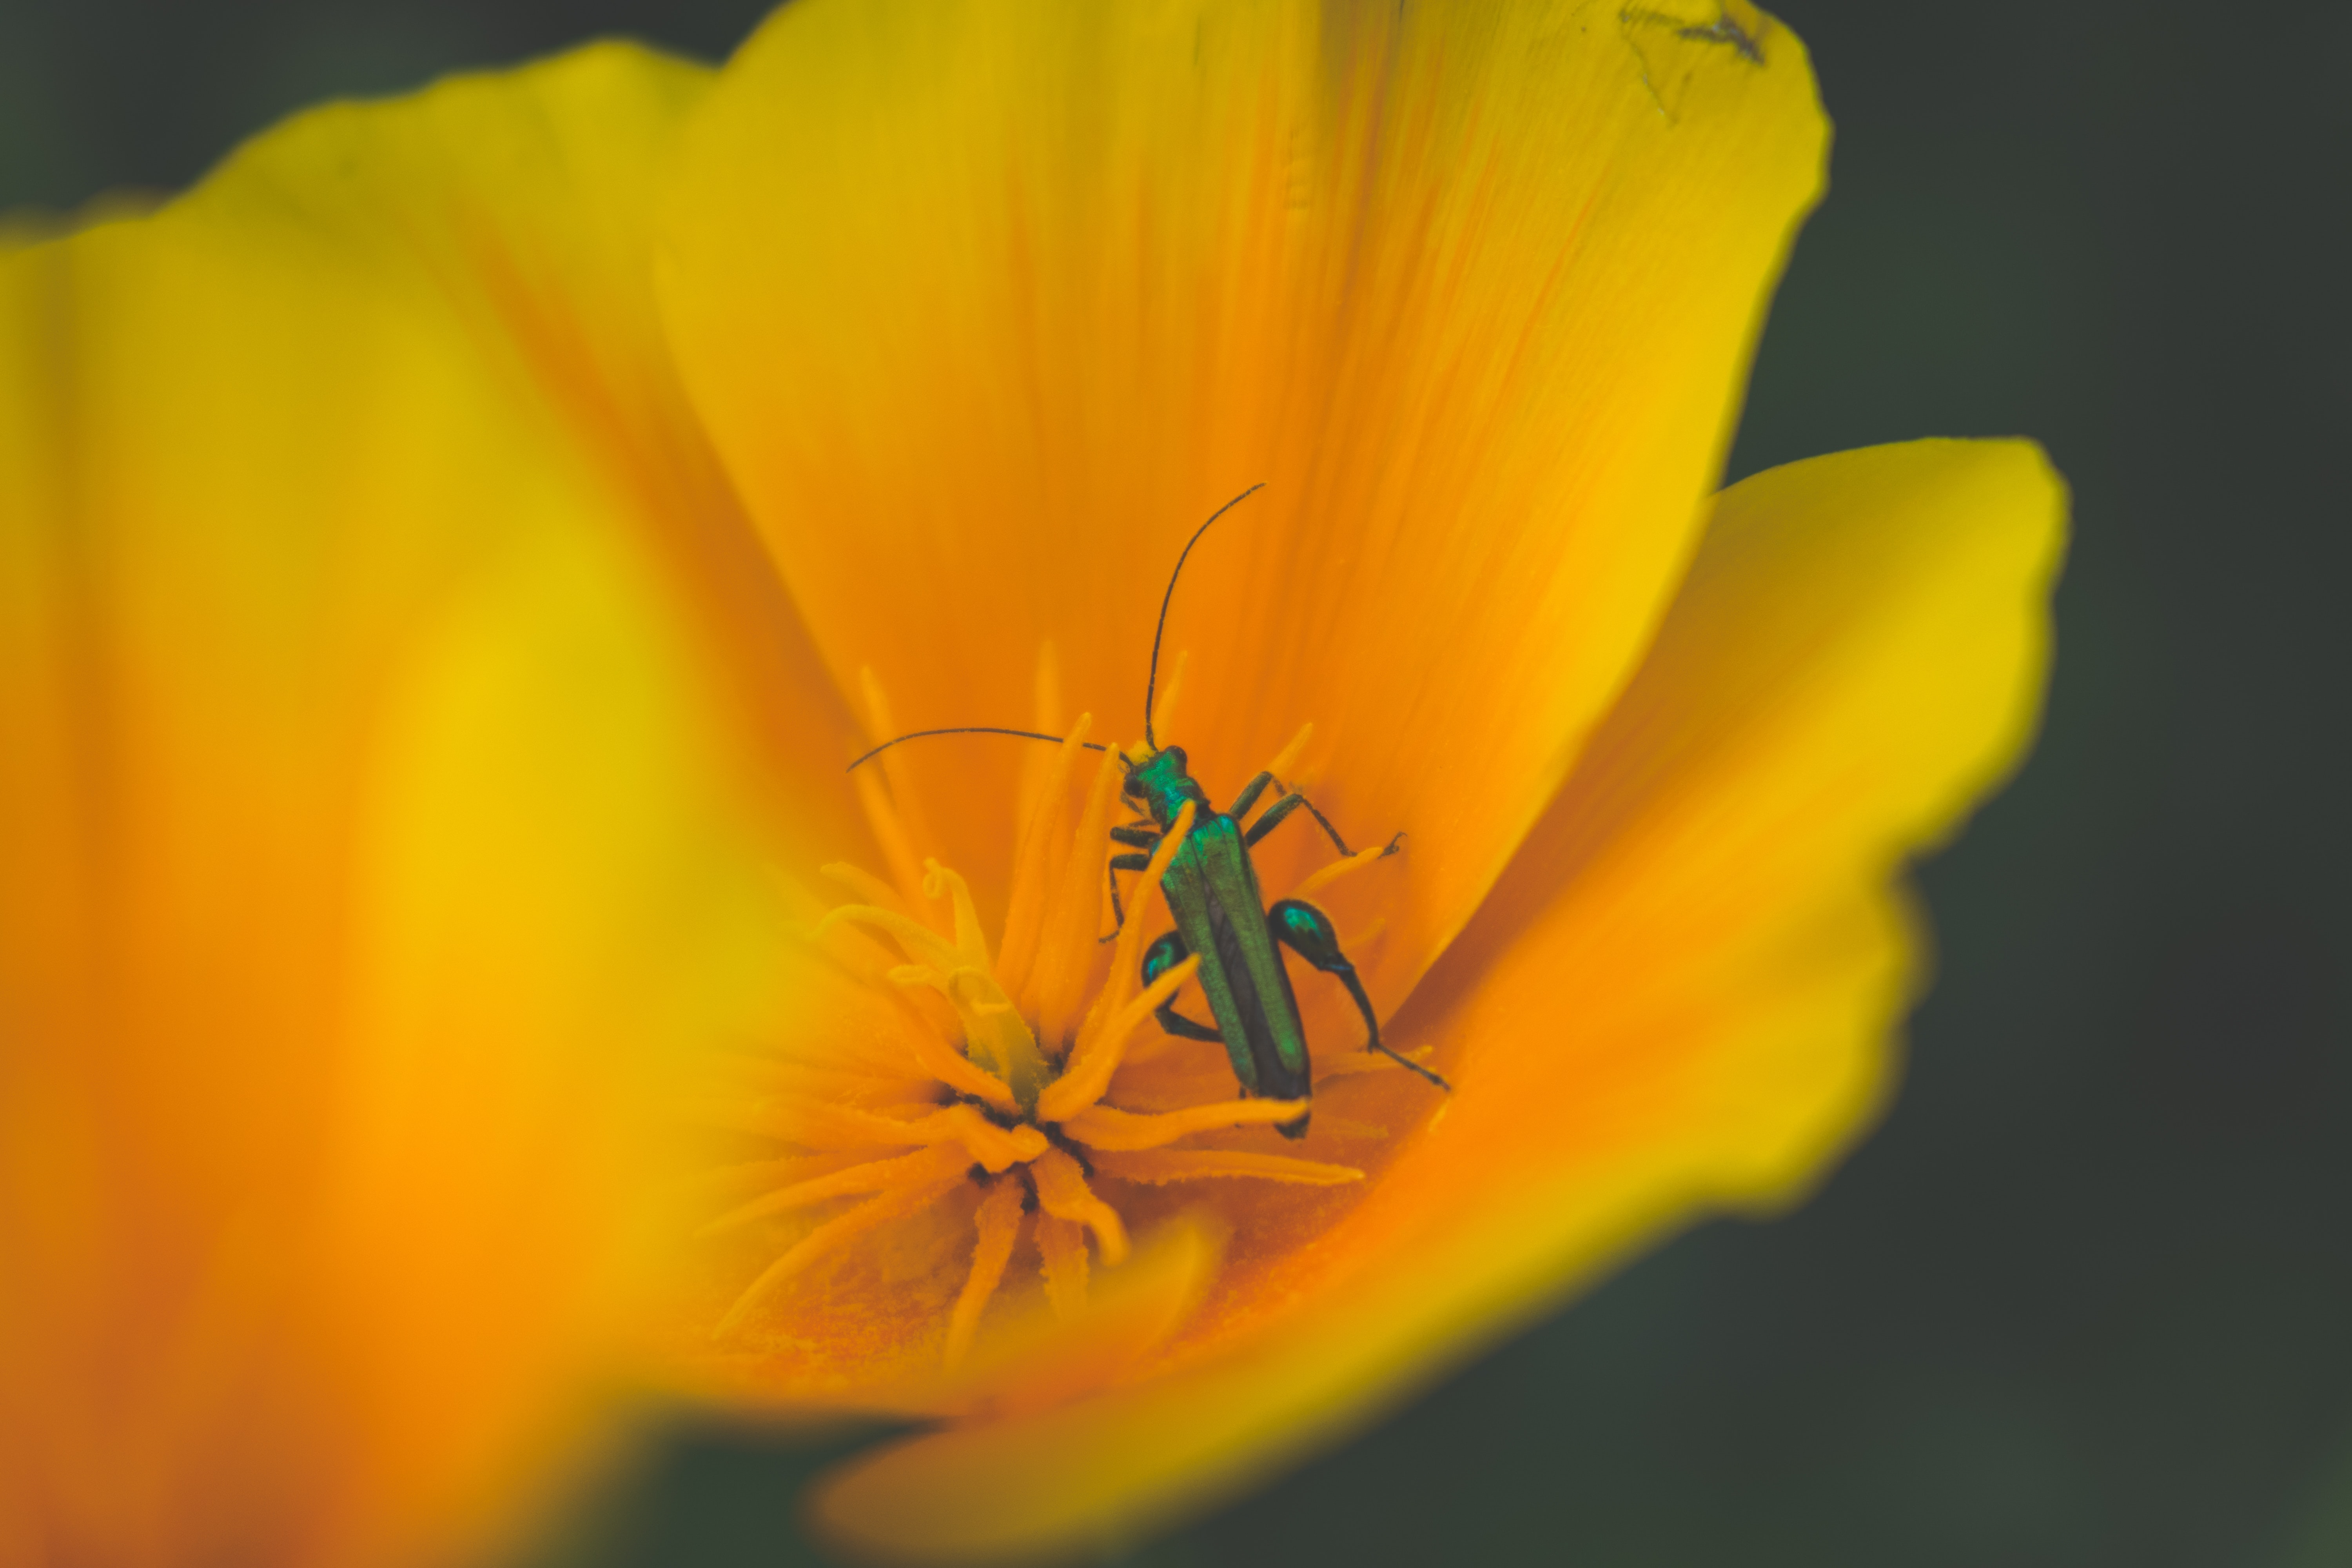 green insect sits on yellow flower